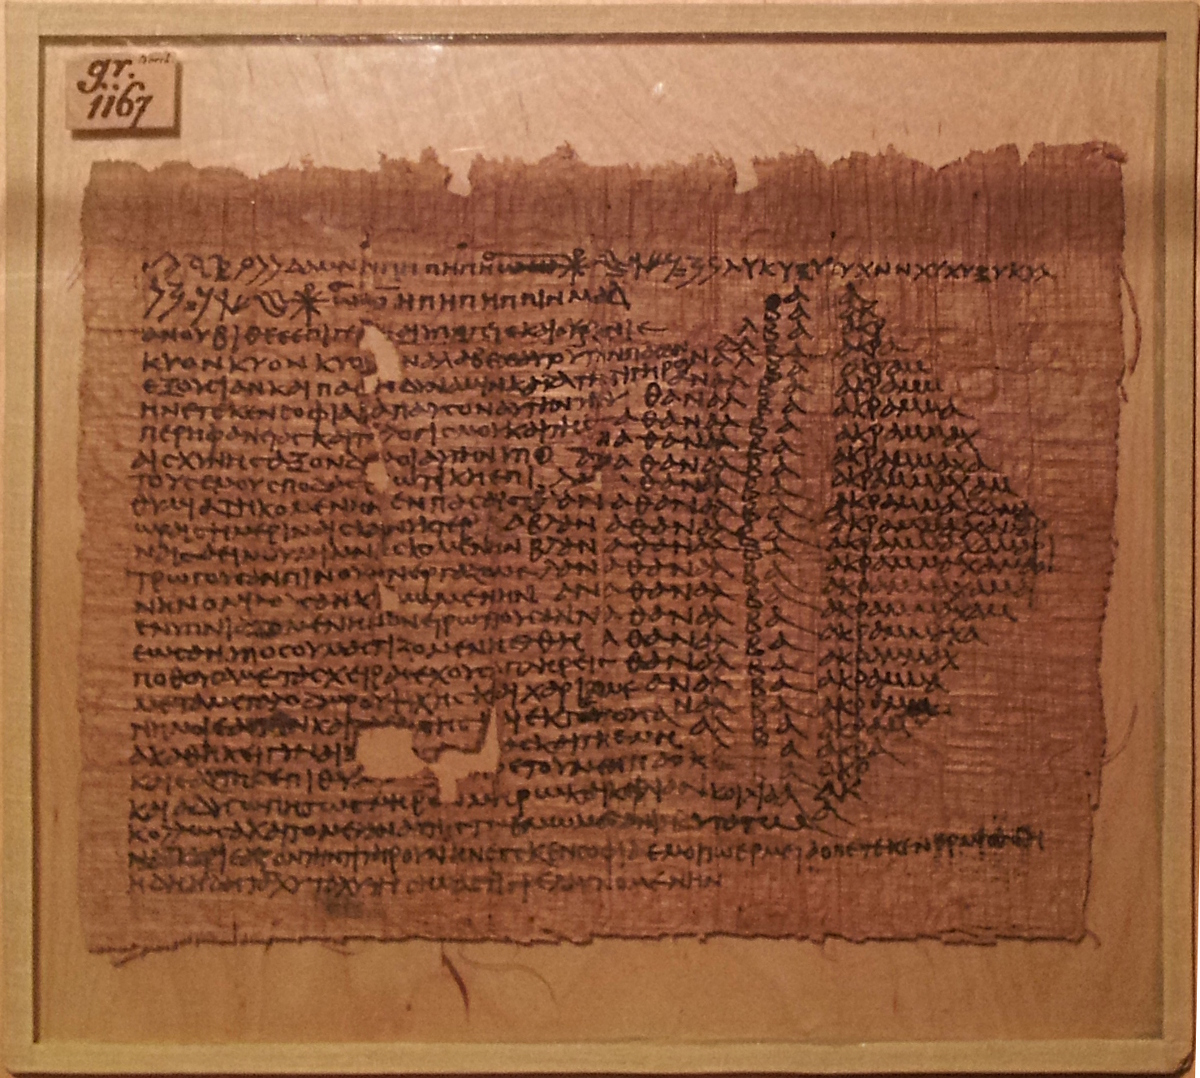 An image of a Greek magical papyrus from the 4th century.